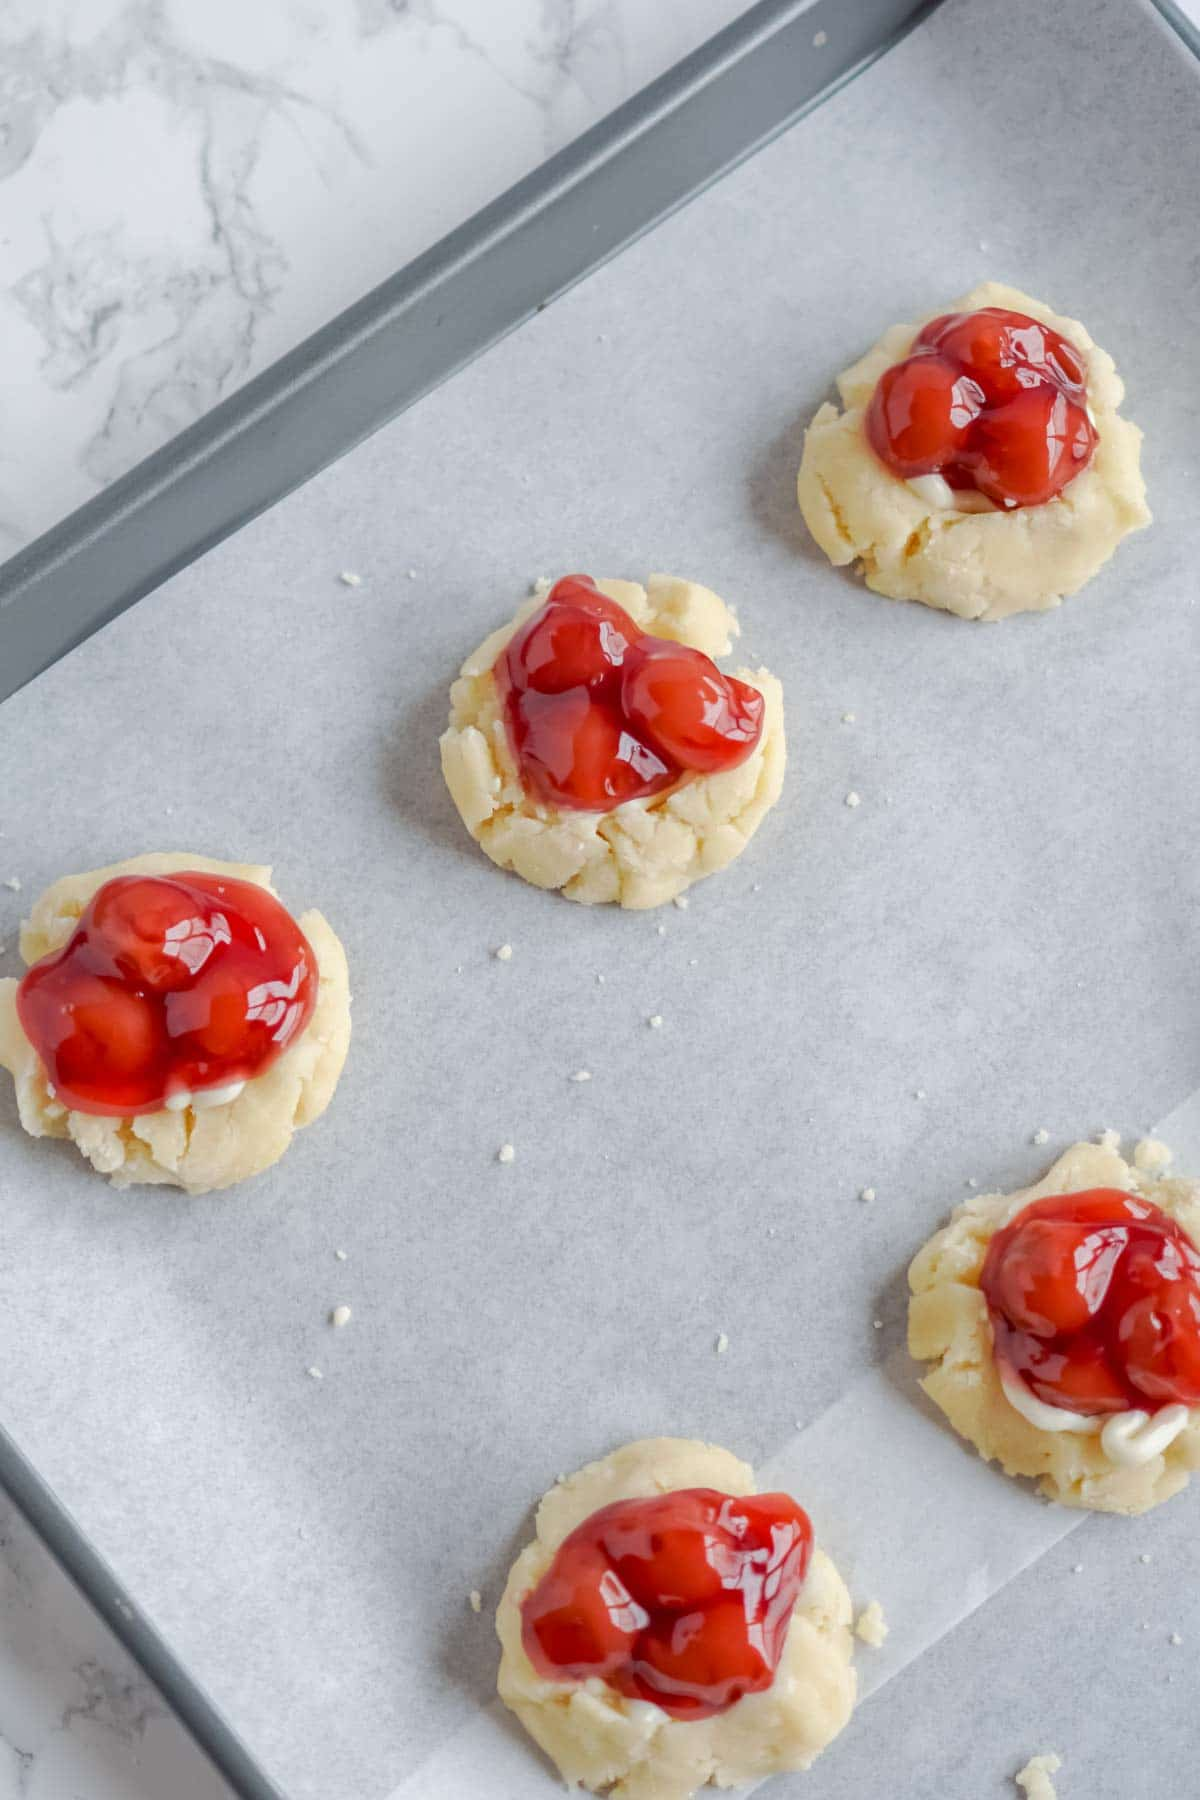 Sugar cookies with cherry pie filling on top